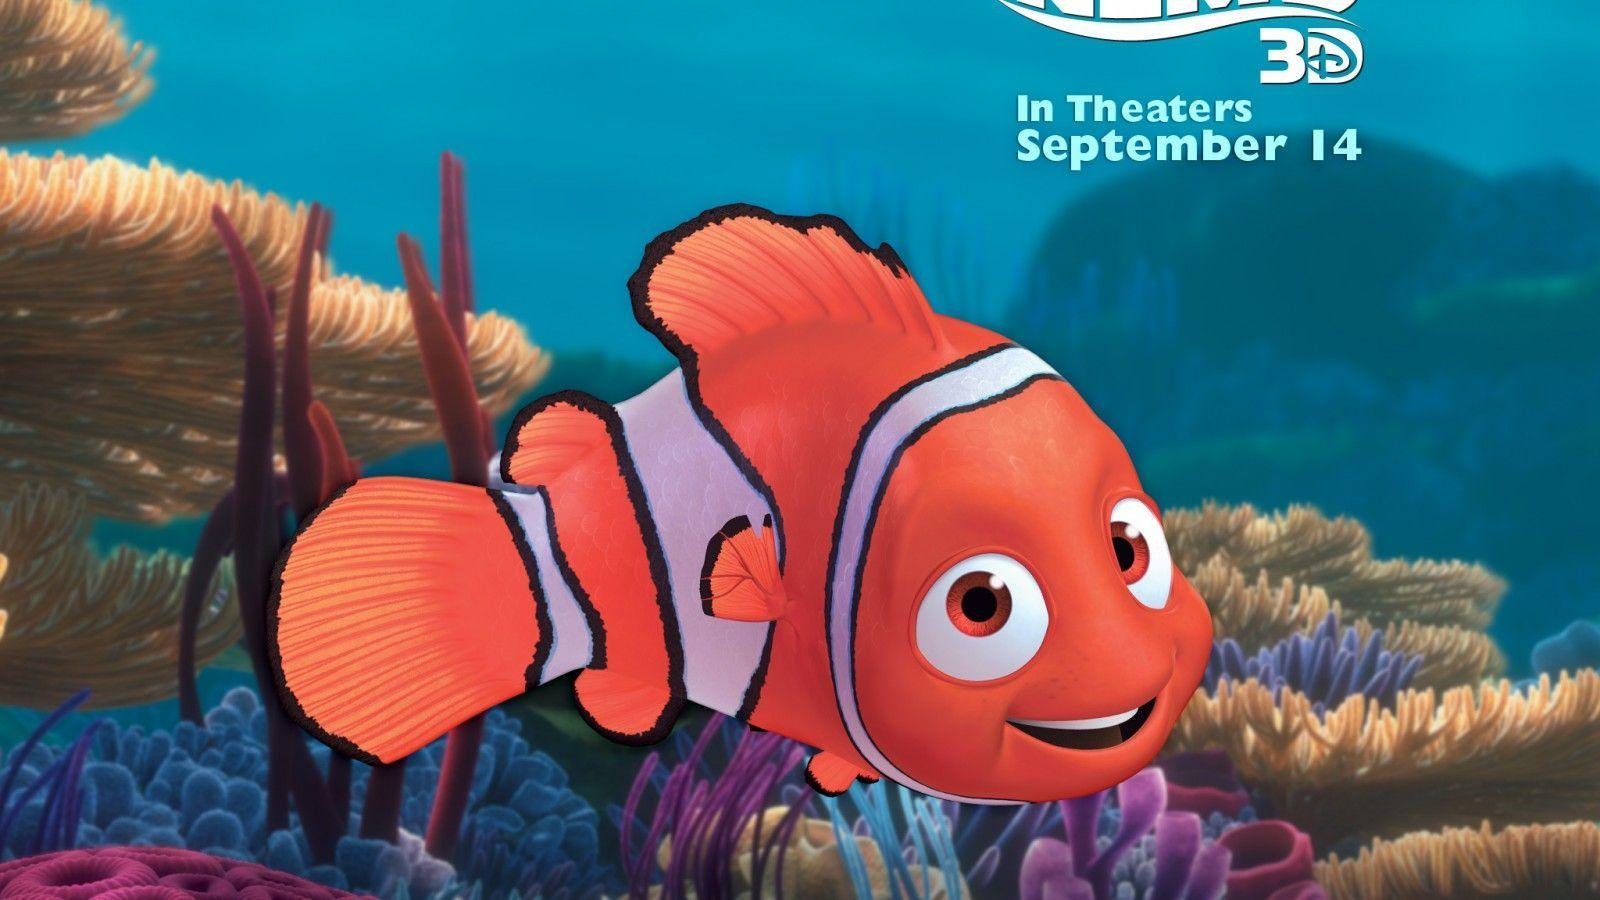 Finding Nemo Backgrounds   Wallpaper Cave